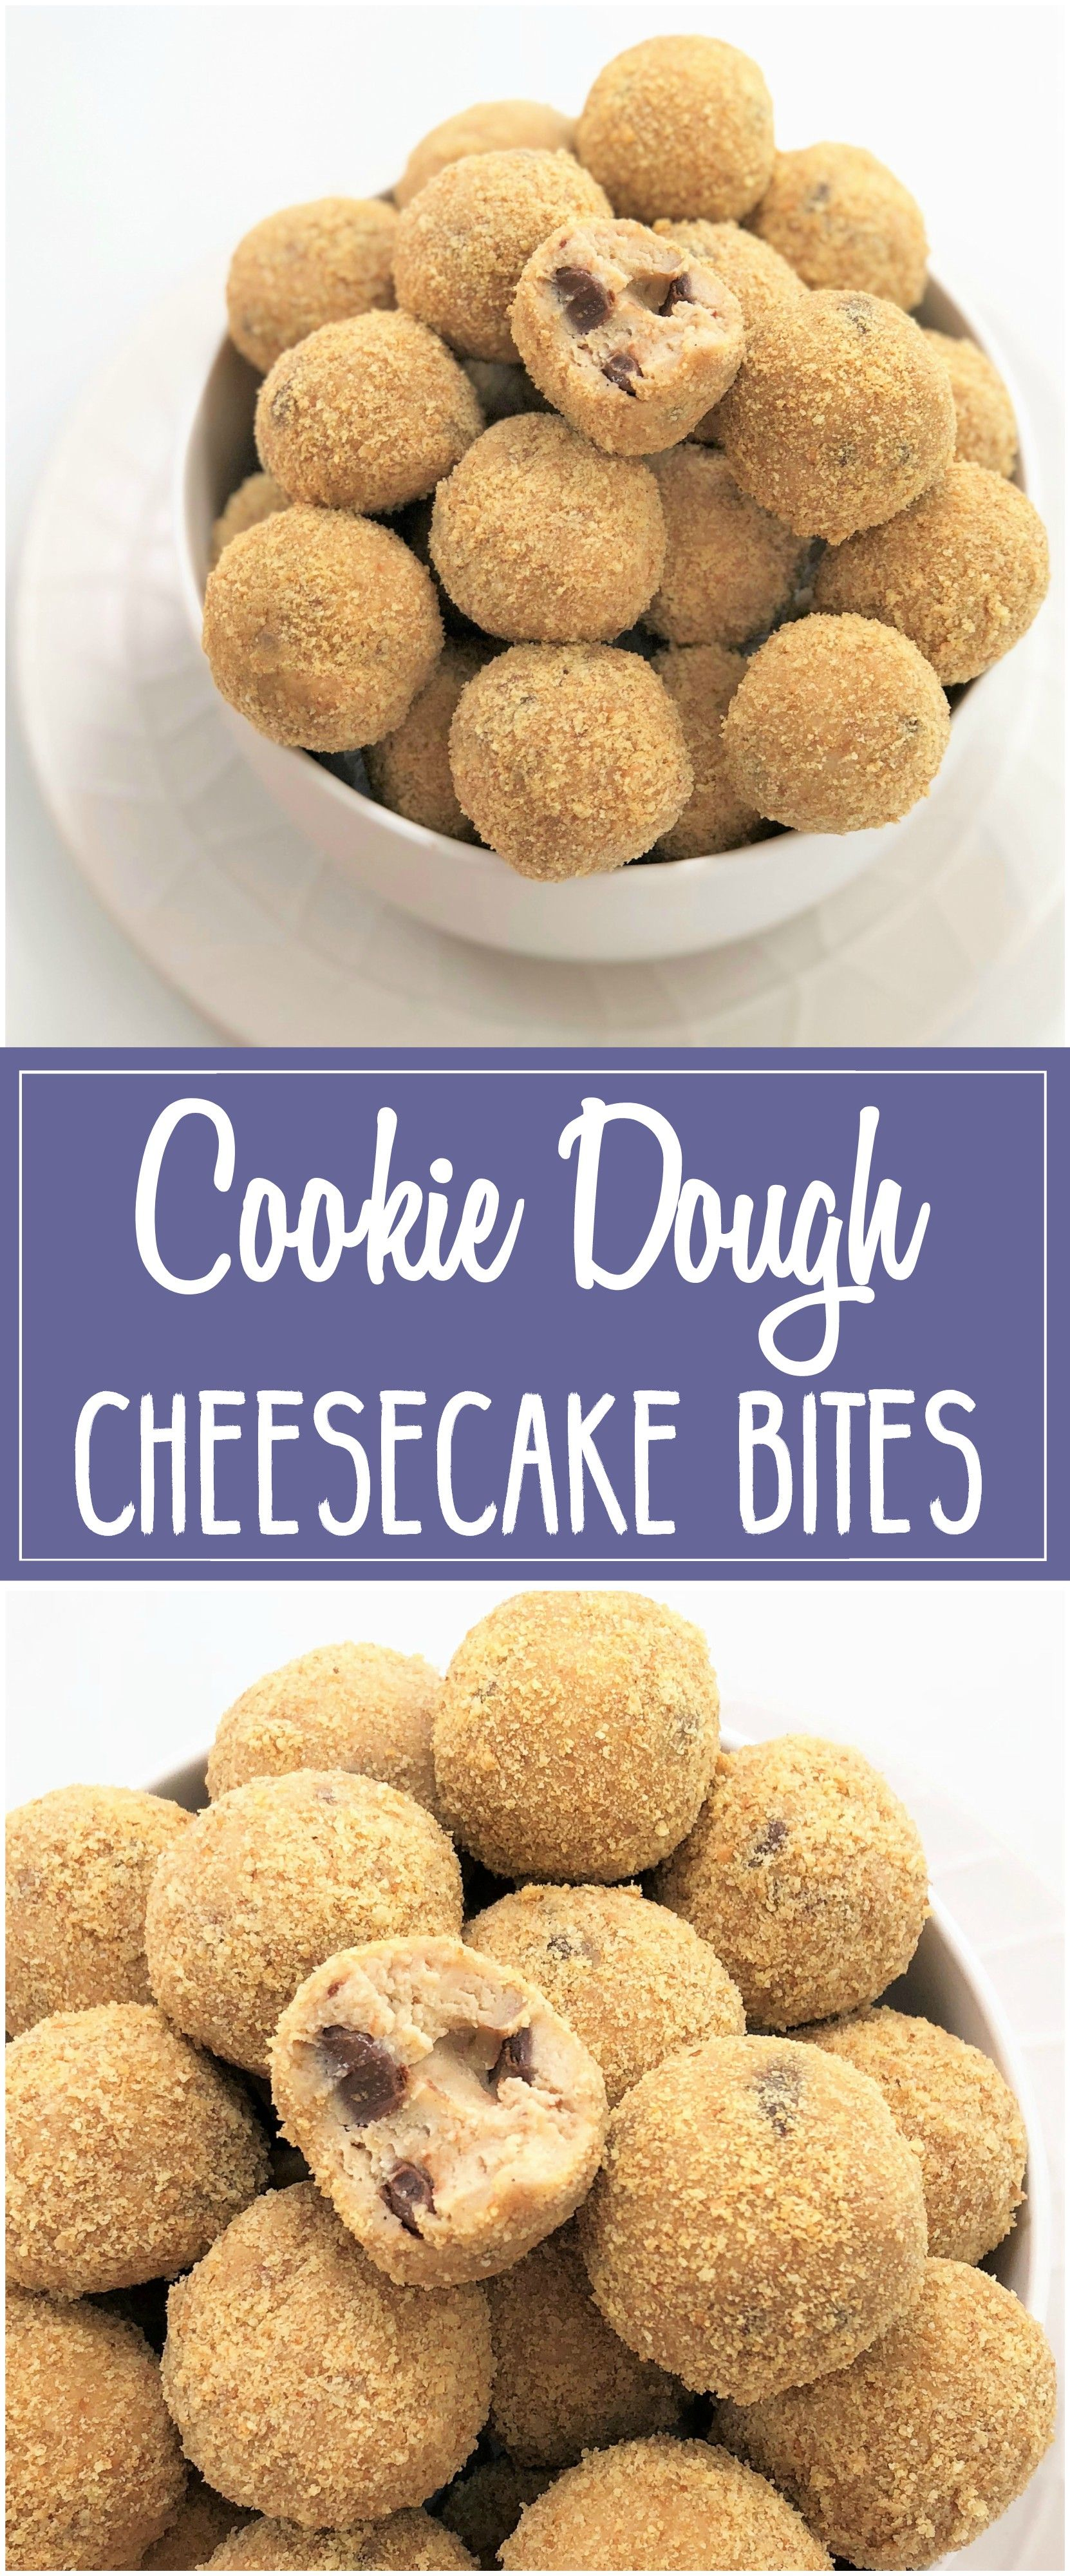 No-bake cookie dough truffles with a cream cheese twist, rolled in cookie crumbs for that cheesecake taste. These no bake chocolate chip cookie dough balls are also eggless | chefnotrequired.com #cookiedough #cheesecake #cheesecakebites #cookiedoughtruffles #cookiedoughballs #eggless #noeggs